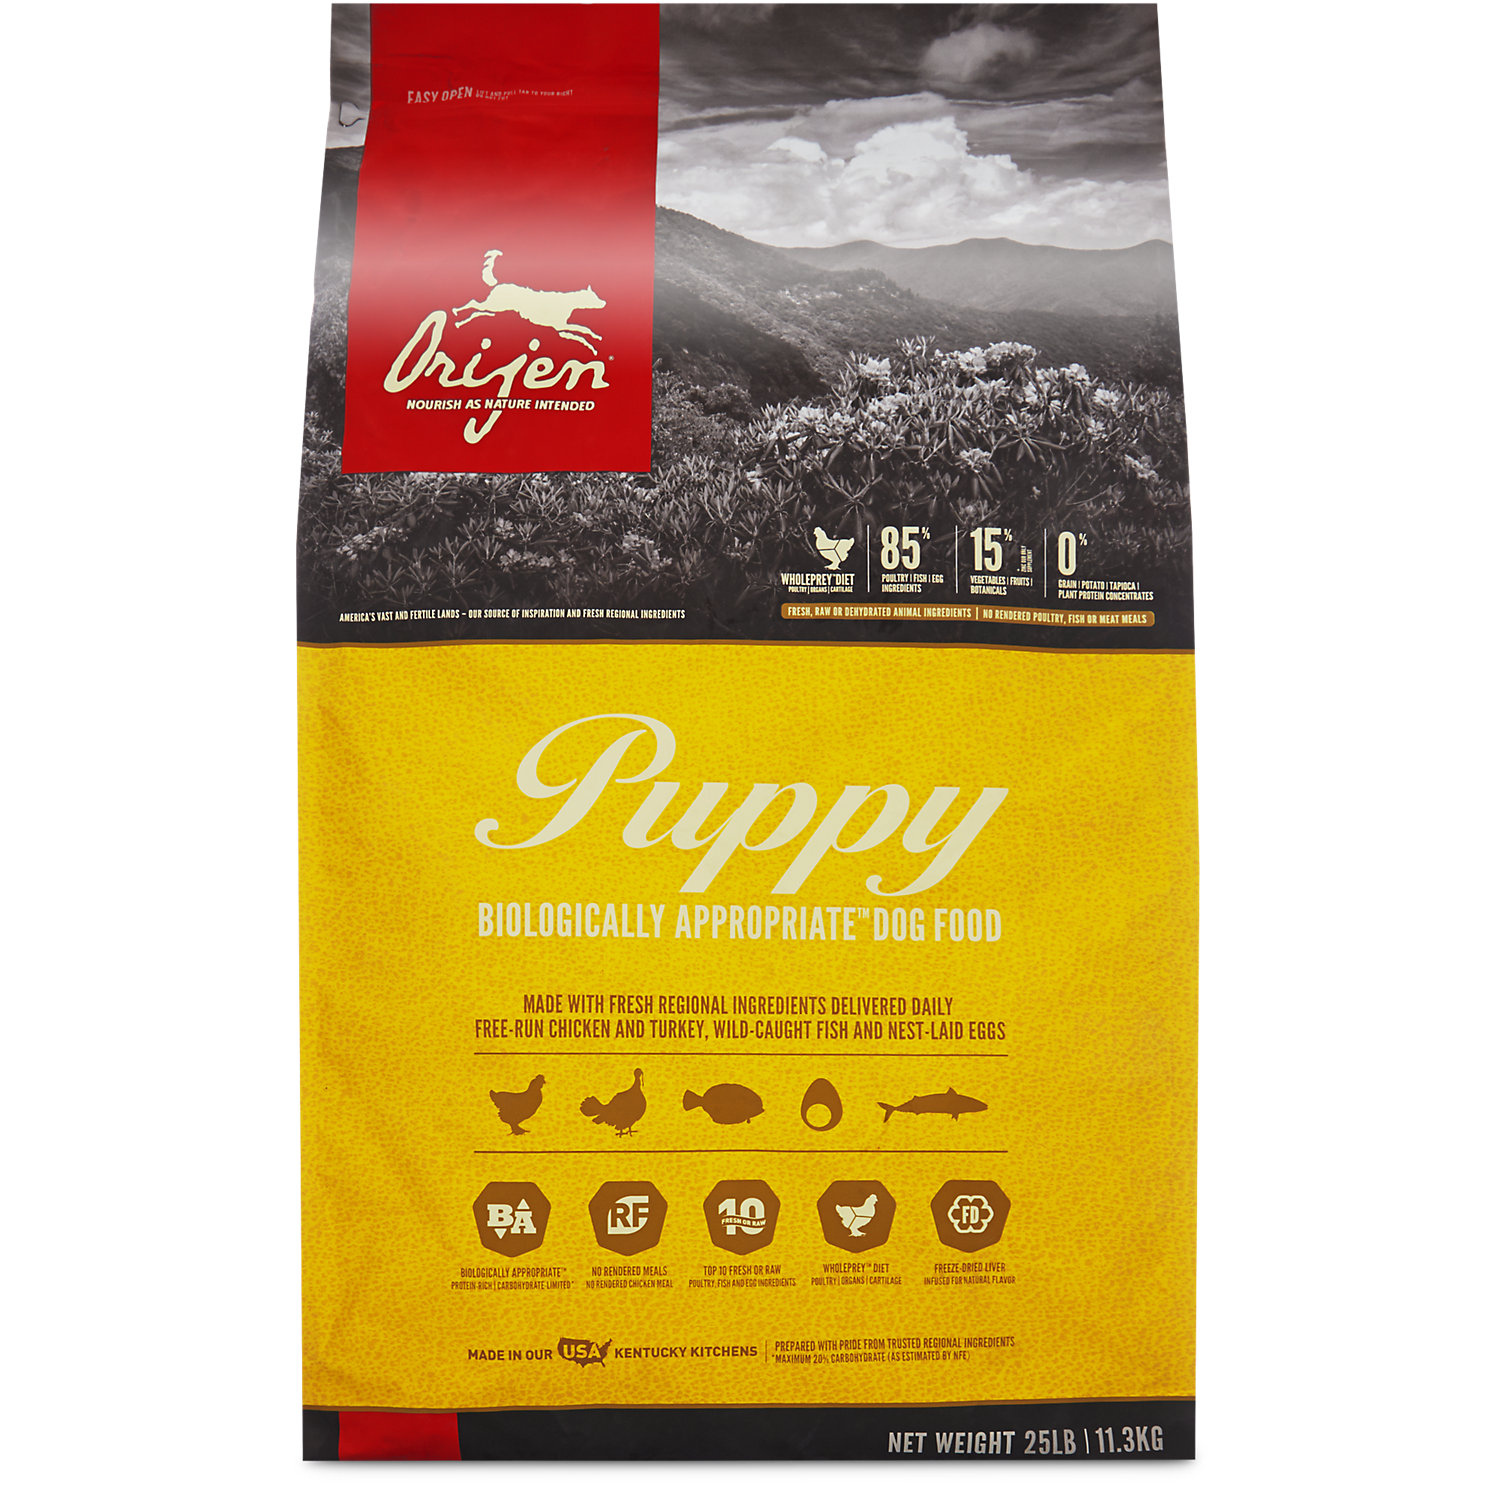 Orijen Grain Free Puppy Dry Dog Food